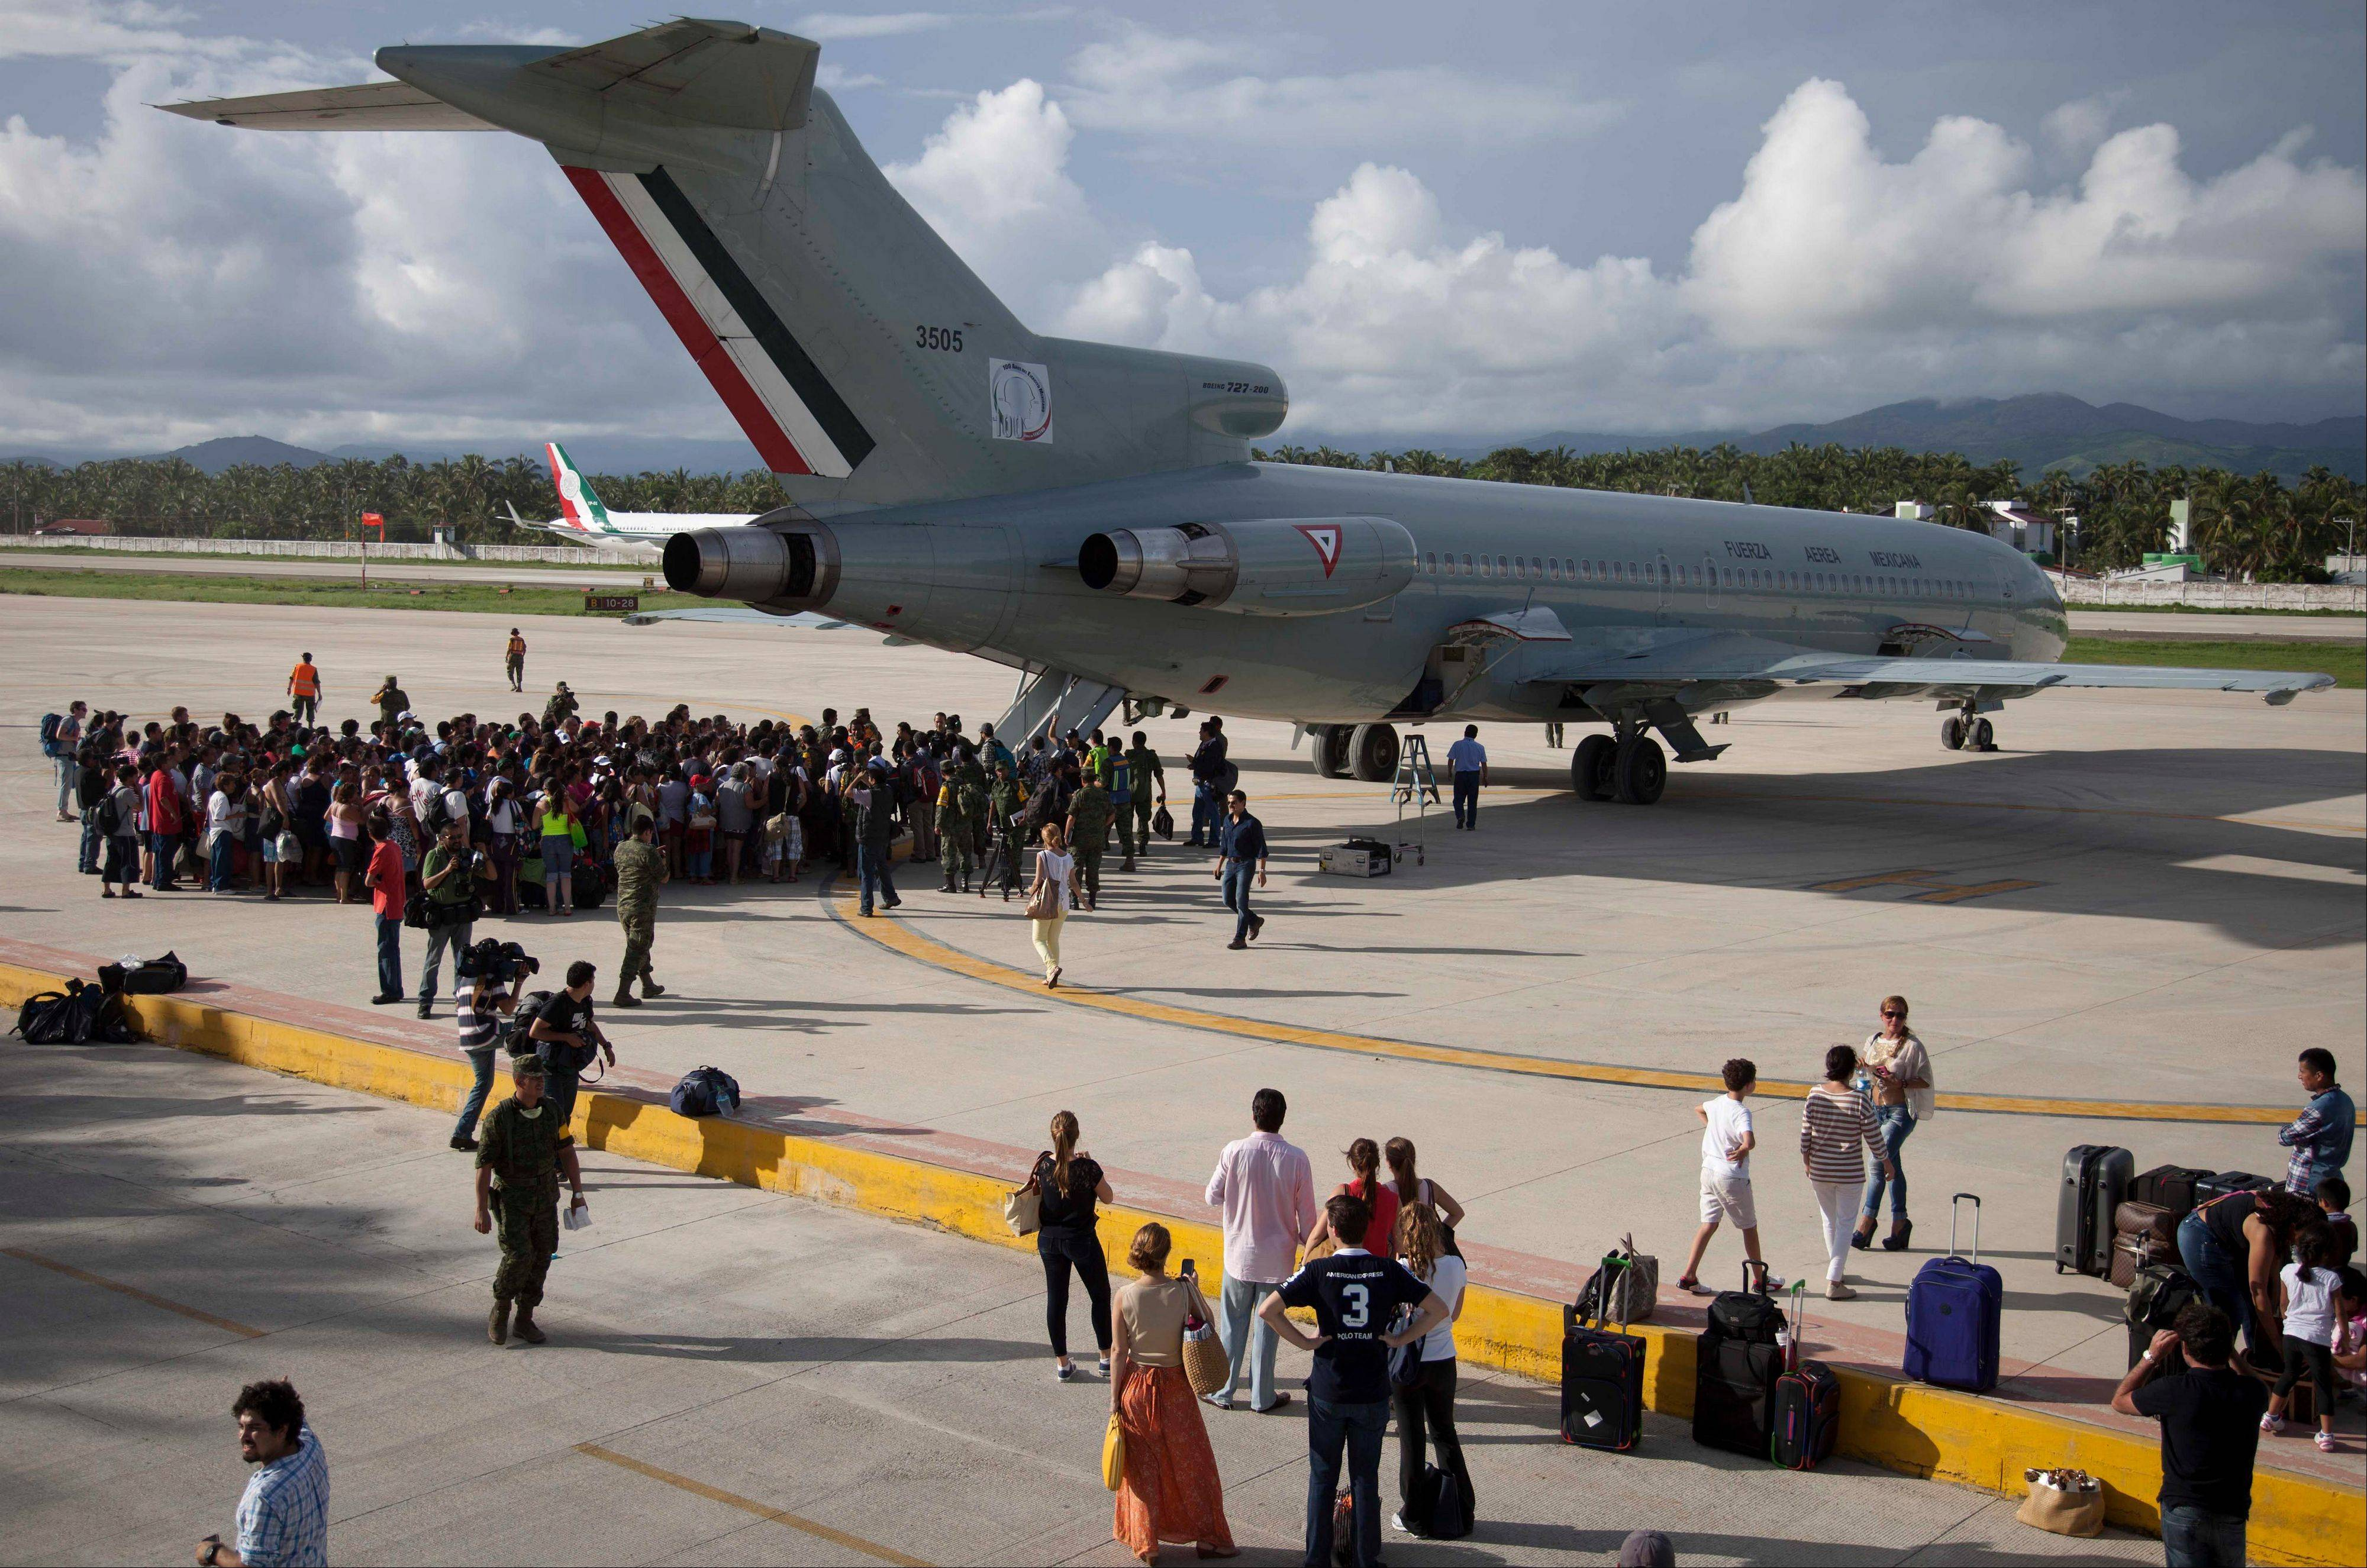 Hundreds of stranded tourists gather around a Mexican Air Force jet as they wait to be evacuated, at the air base in Pie de la Cuesta, near Acapulco, Mexico, Tuesday, Sept. 17, 2013. With roads blocked by landslides, rockslides, floods and collapsed bridges, Acapulco was cut off from road transport after Tropical Storm Manuel made landfall on Sunday. The airport as well, was flooded. Emergency flights began arriving in Acapulco to evacuate at least 40,000 mainly Mexican tourists stranded in the resort city.